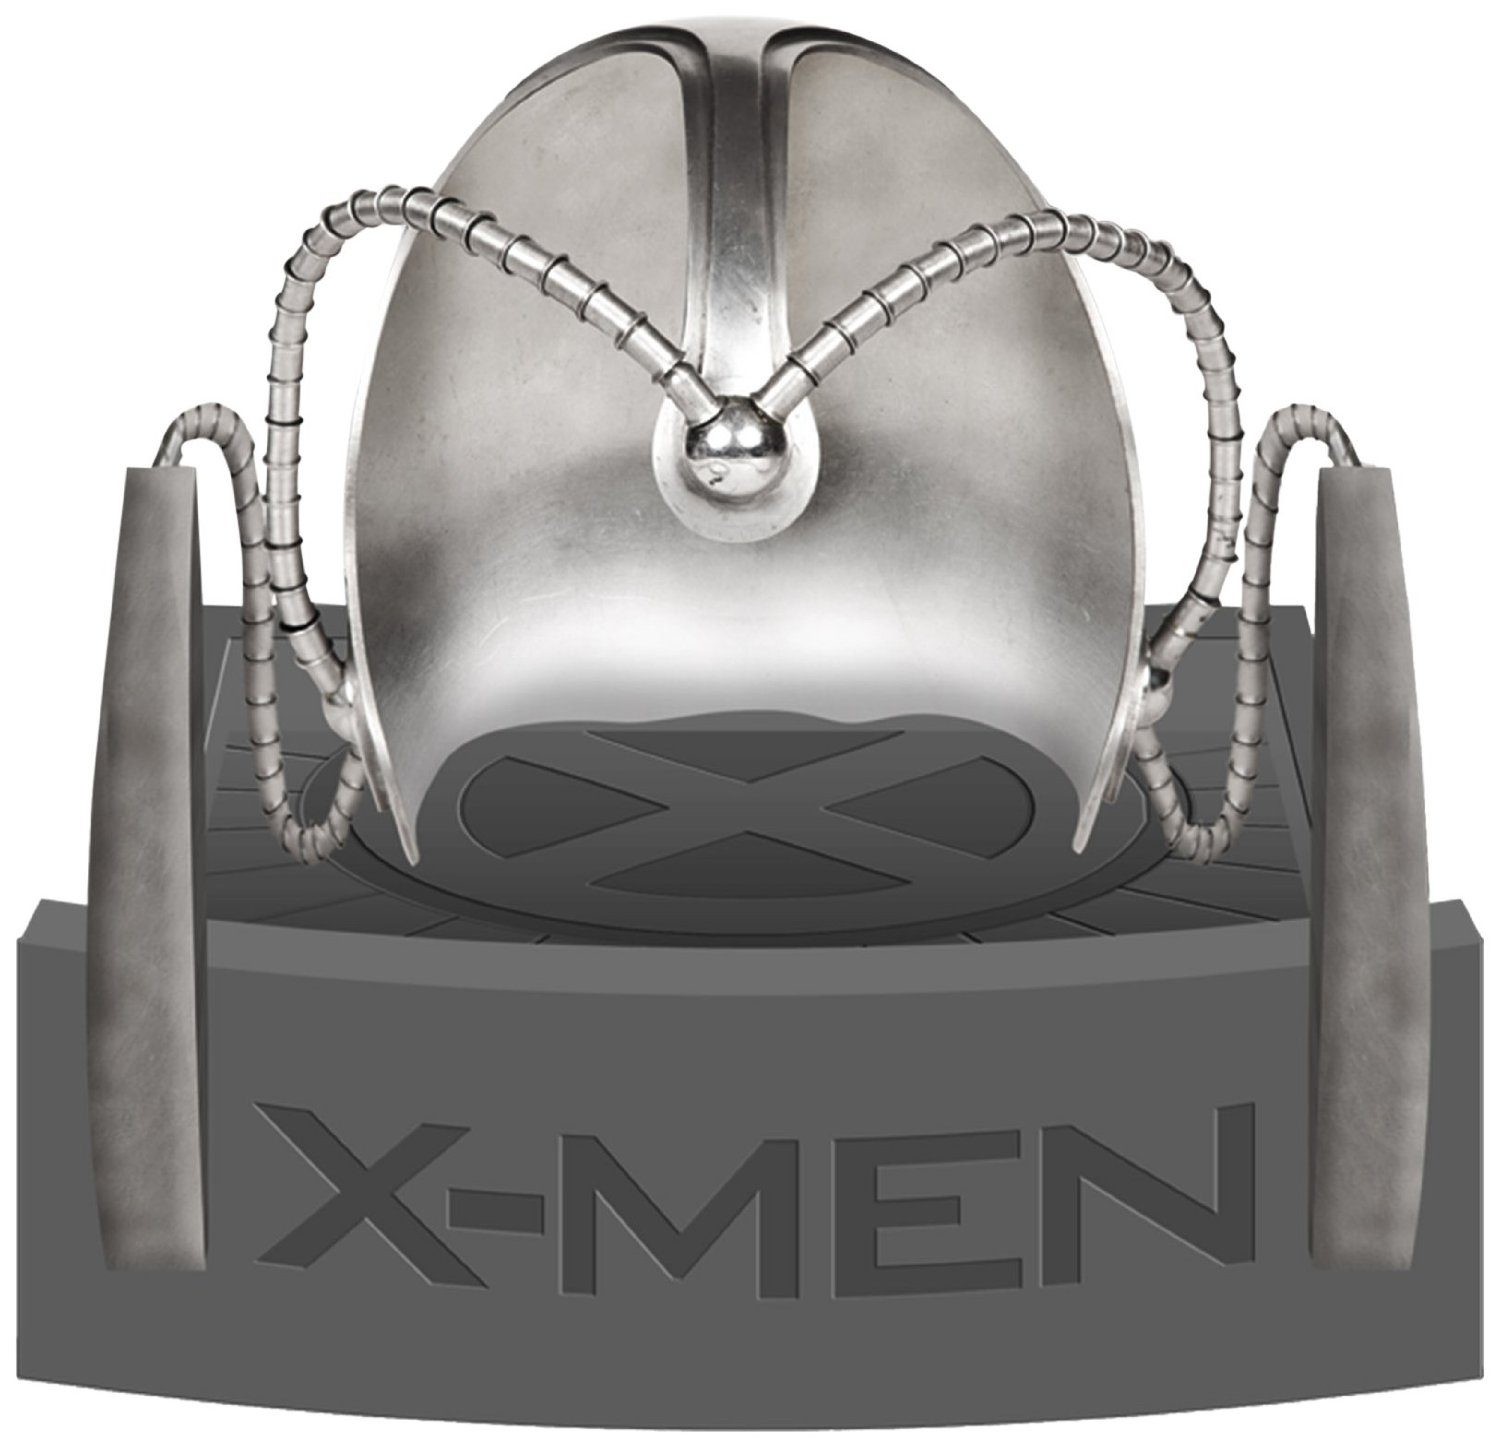 x-men limited edition cerebro